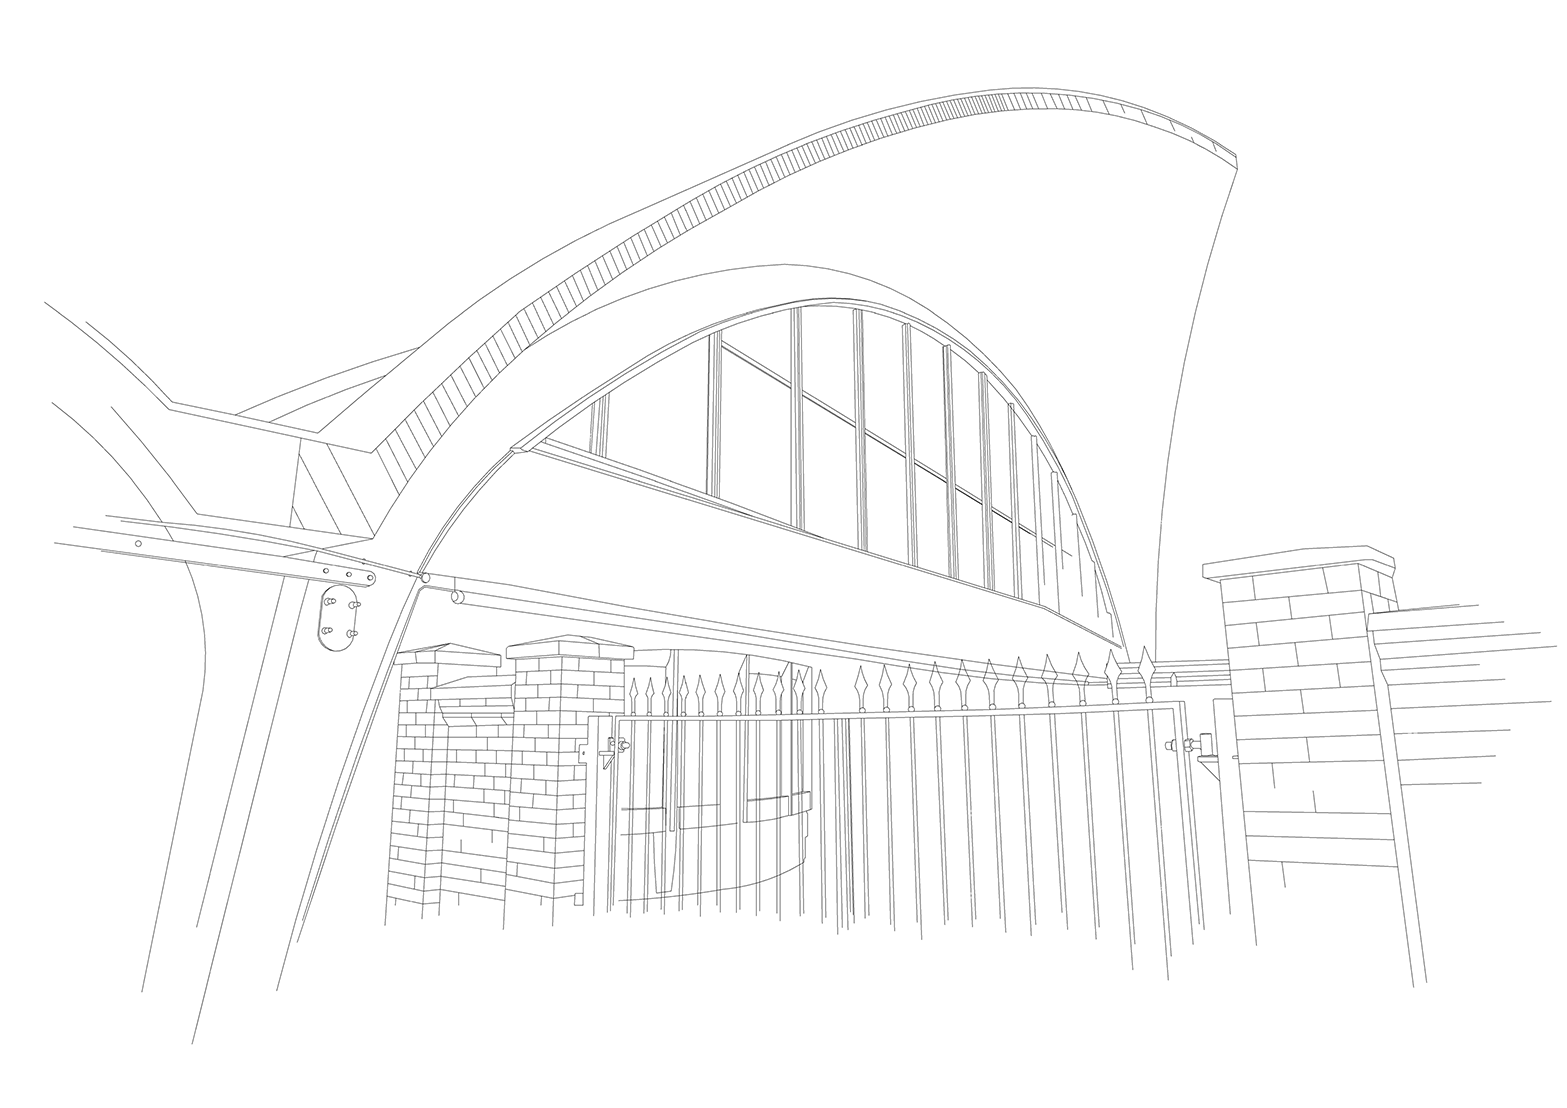 Drawing Lines Revit : Architectural drawing free hand revit line drawings on behance